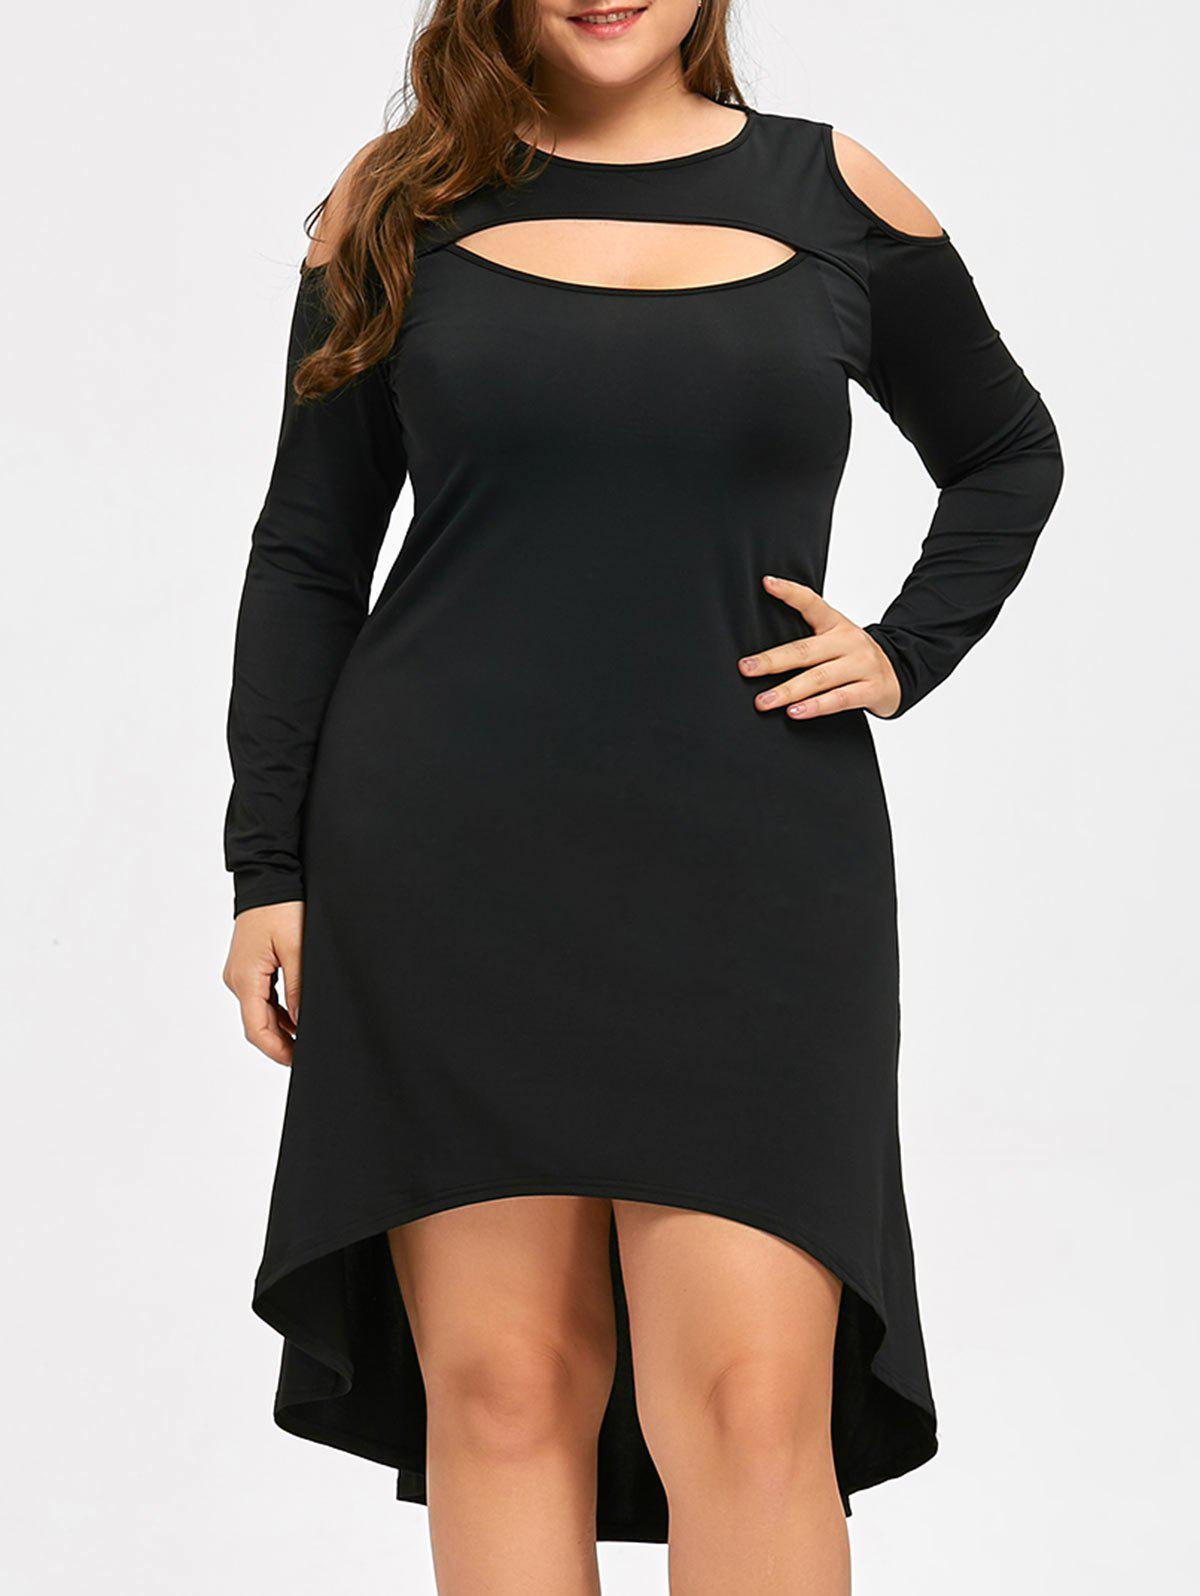 Plus Size Open Shoulder Keyhole Cocktail DressWOMEN<br><br>Size: 3XL; Color: BLACK; Style: Brief; Material: Polyester,Spandex; Silhouette: A-Line; Dresses Length: Knee-Length; Neckline: Round Collar; Sleeve Length: Long Sleeves; Pattern Type: Solid Color; With Belt: No; Season: Fall,Spring; Weight: 0.3400kg; Package Contents: 1 x Dress;